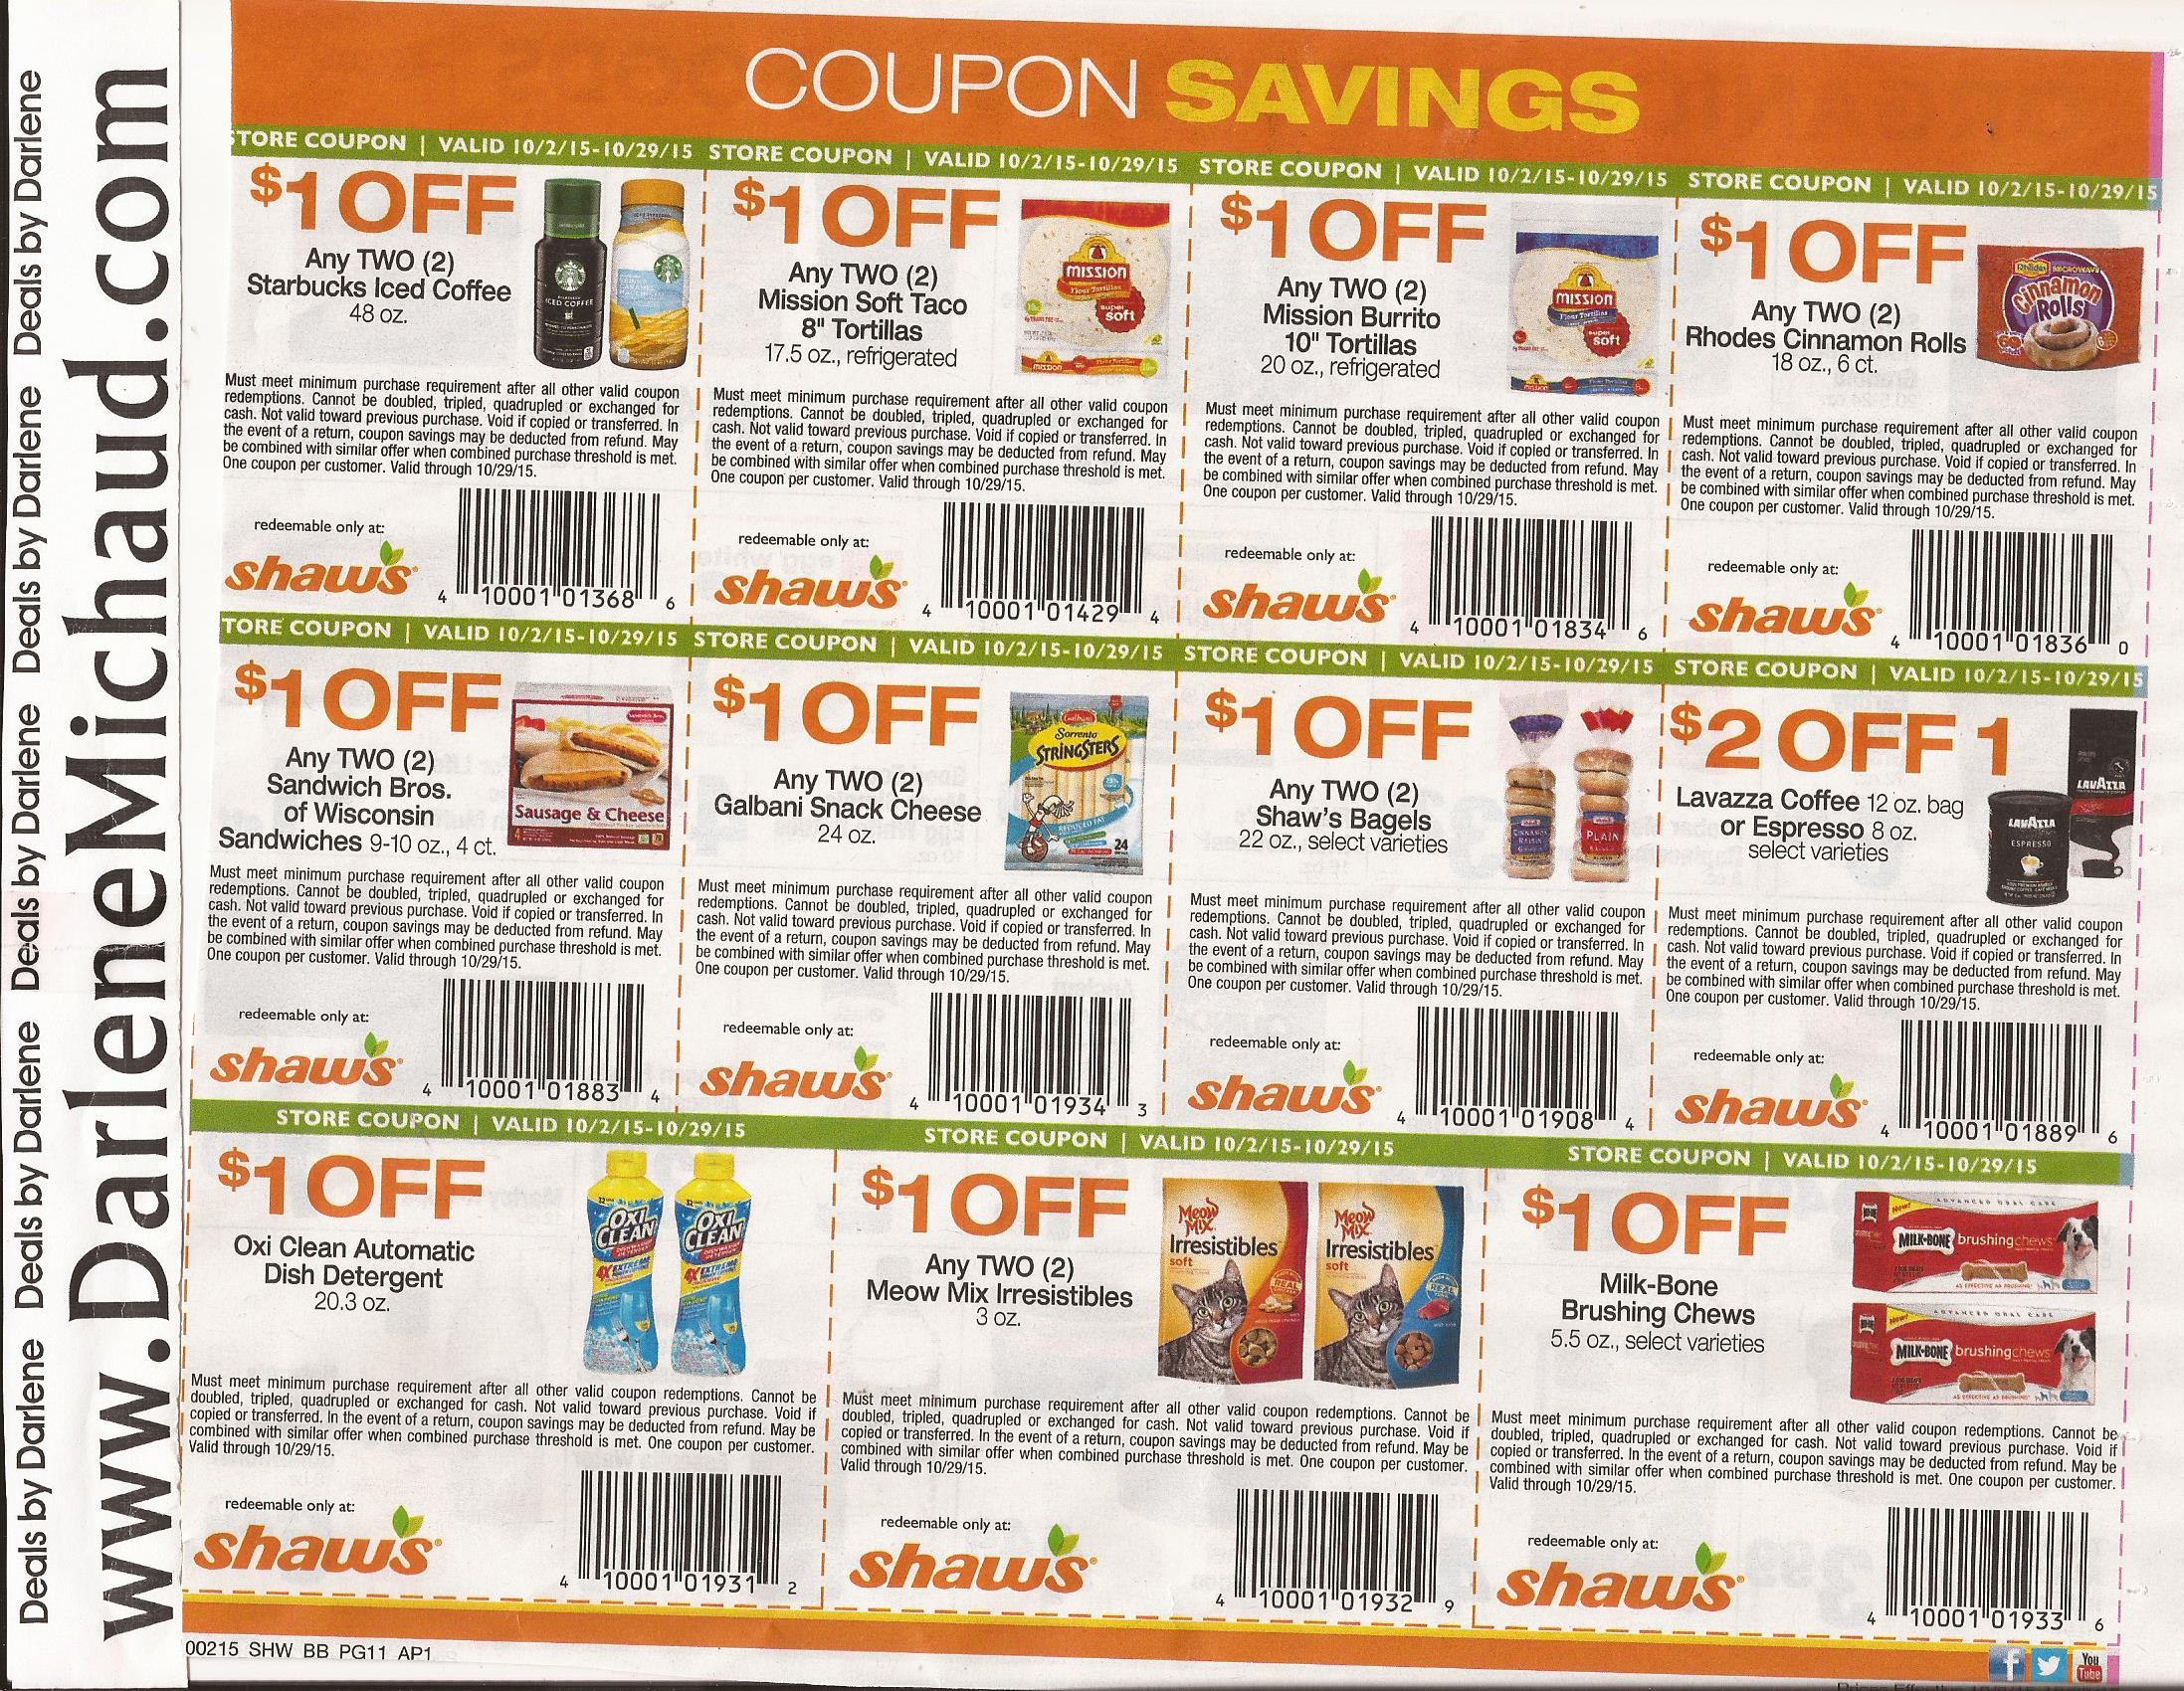 shaws-big-book-savings-10-2-10-29-page-11